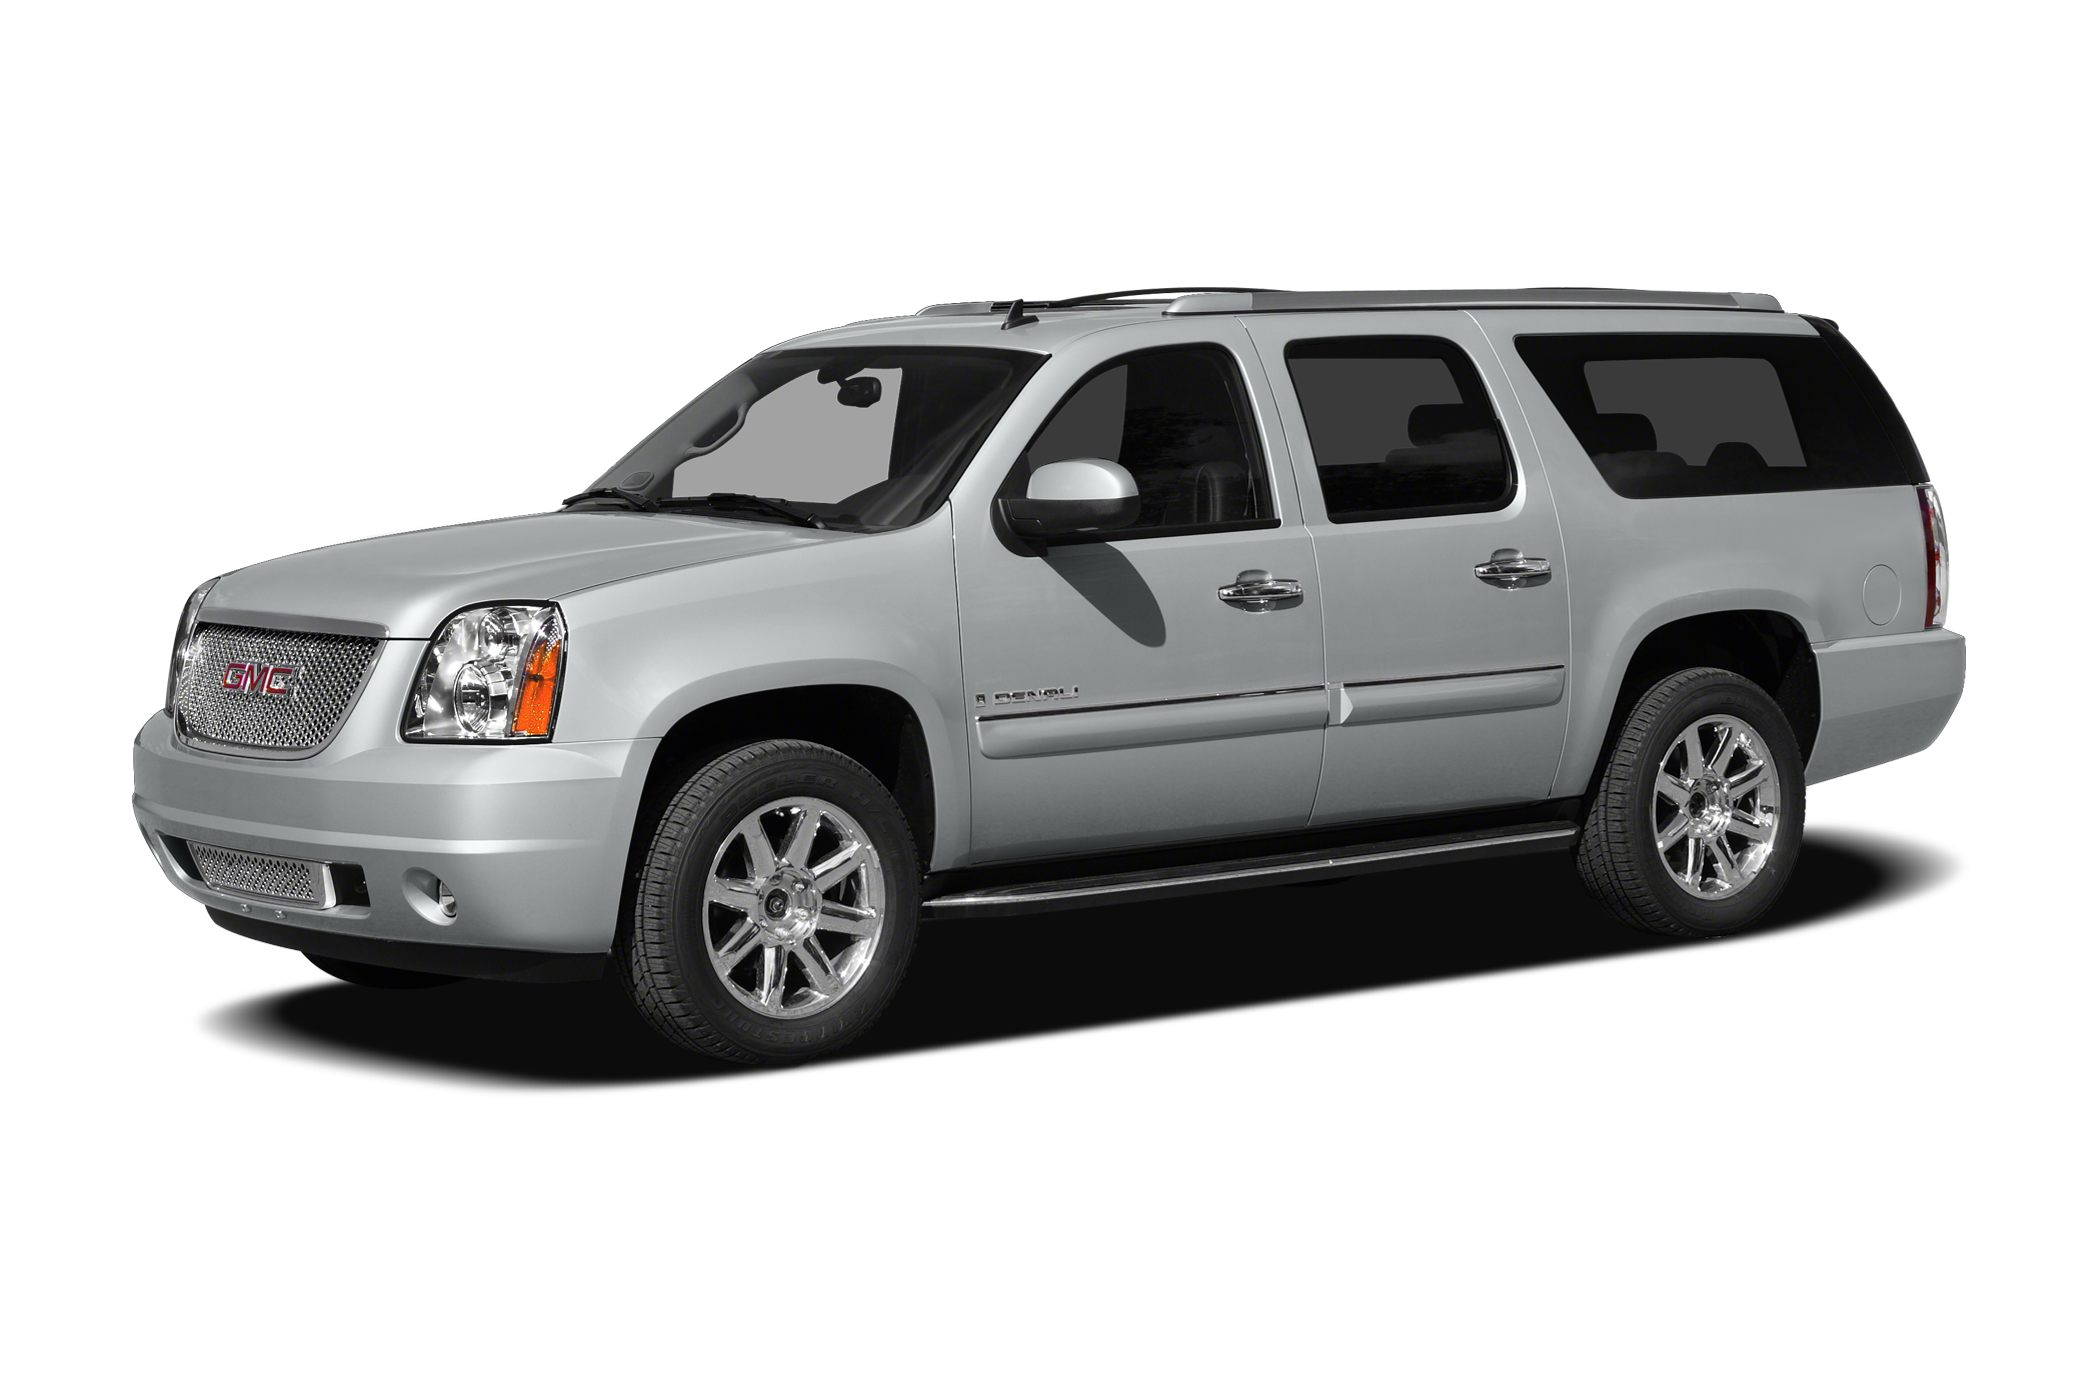 2013 GMC Yukon XL Denali SUV for sale in Lexington for $43,000 with 60,395 miles